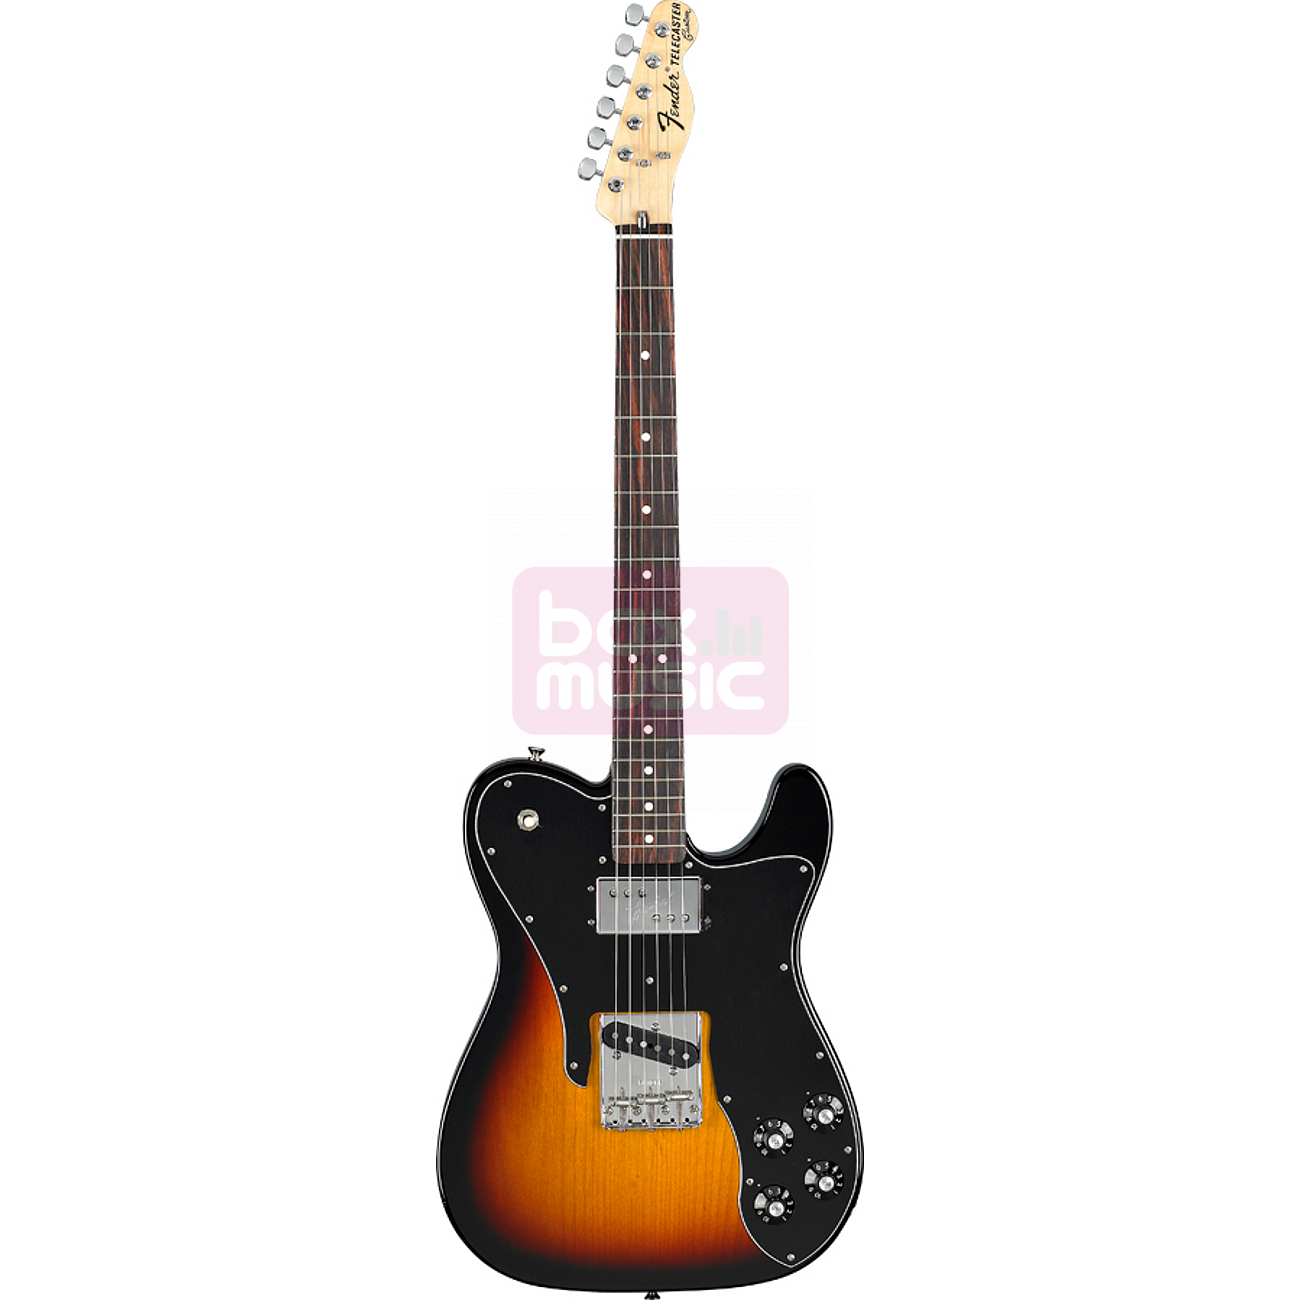 Fender Classic Series 72 Telecaster Custom 3-Color Sunburst RW